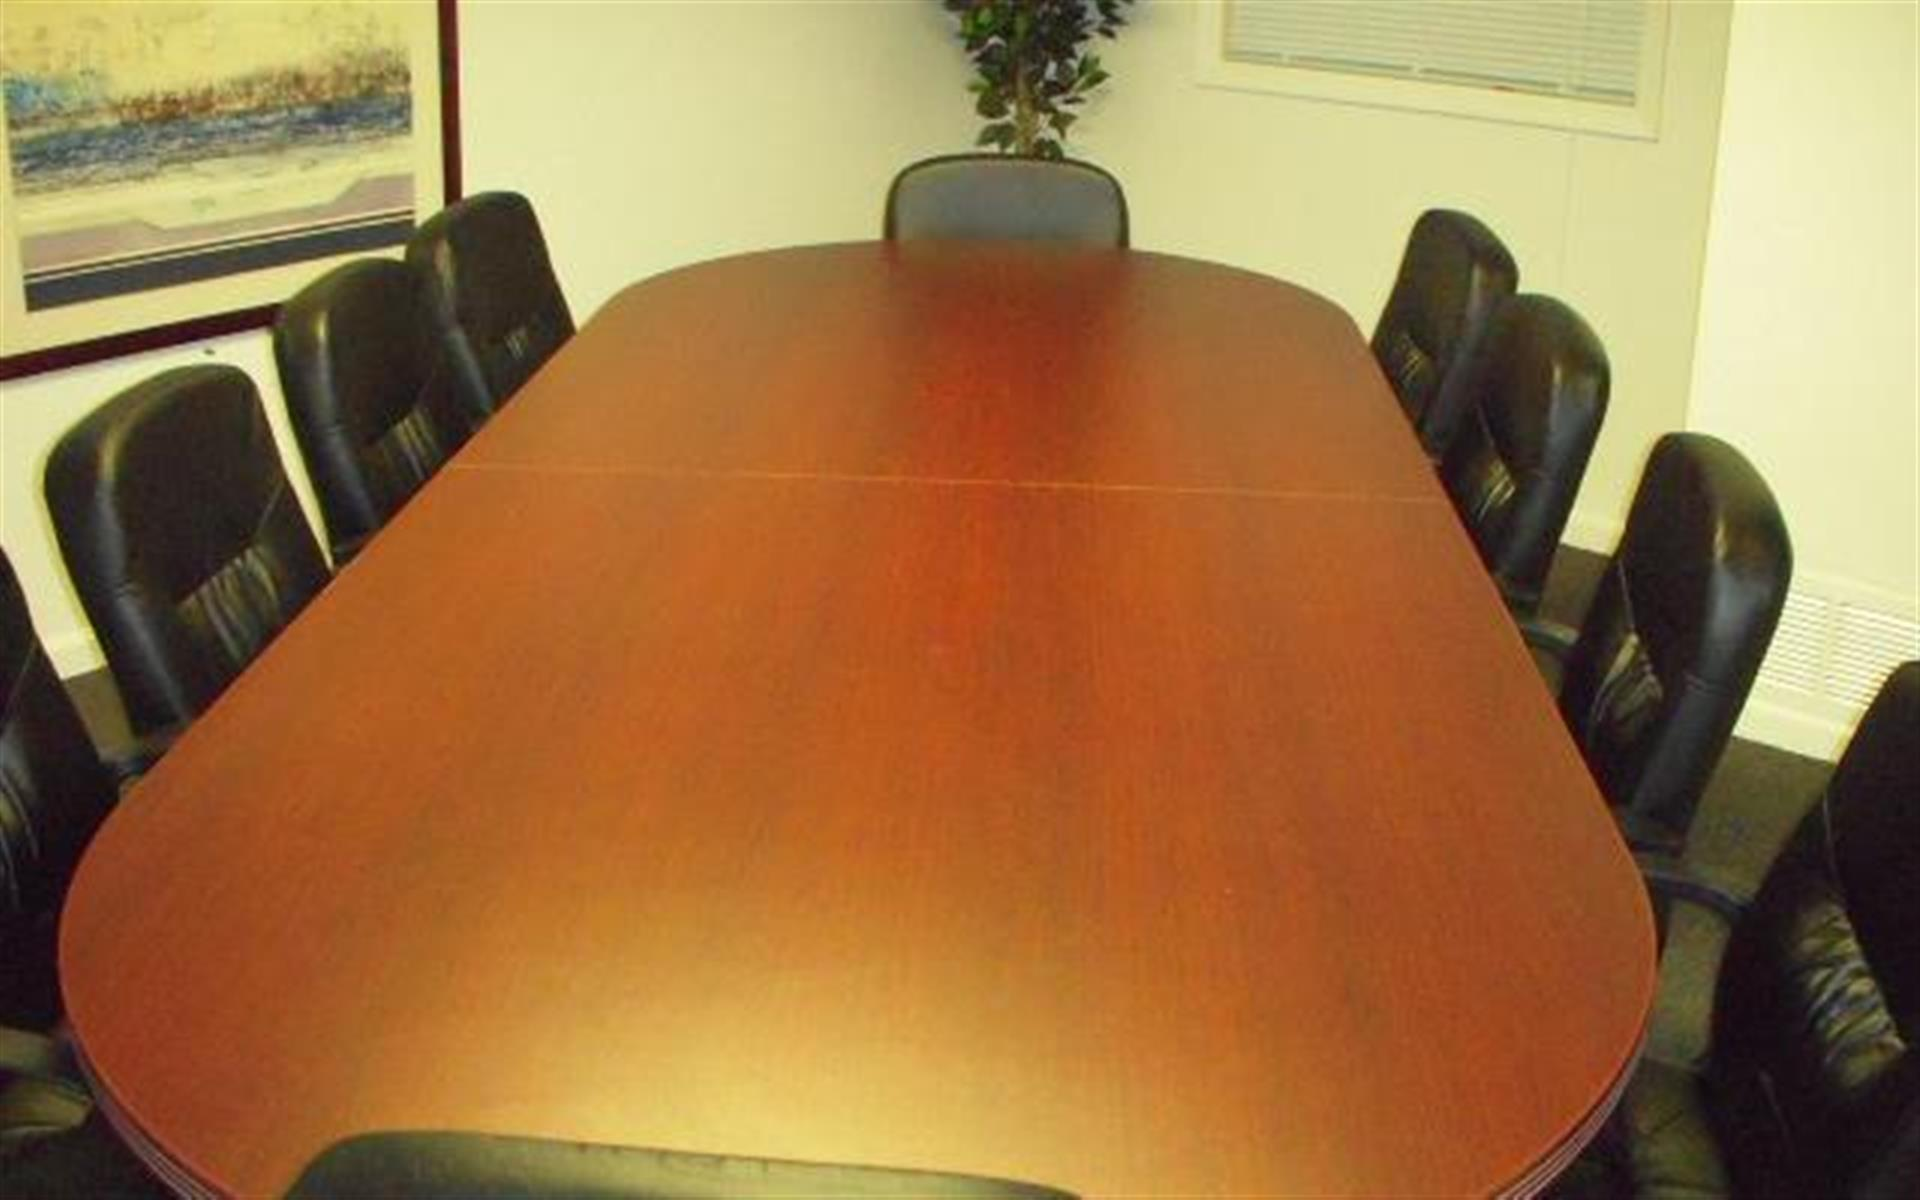 Plaza Executive Suites Mesa Office Plaza - Board Room